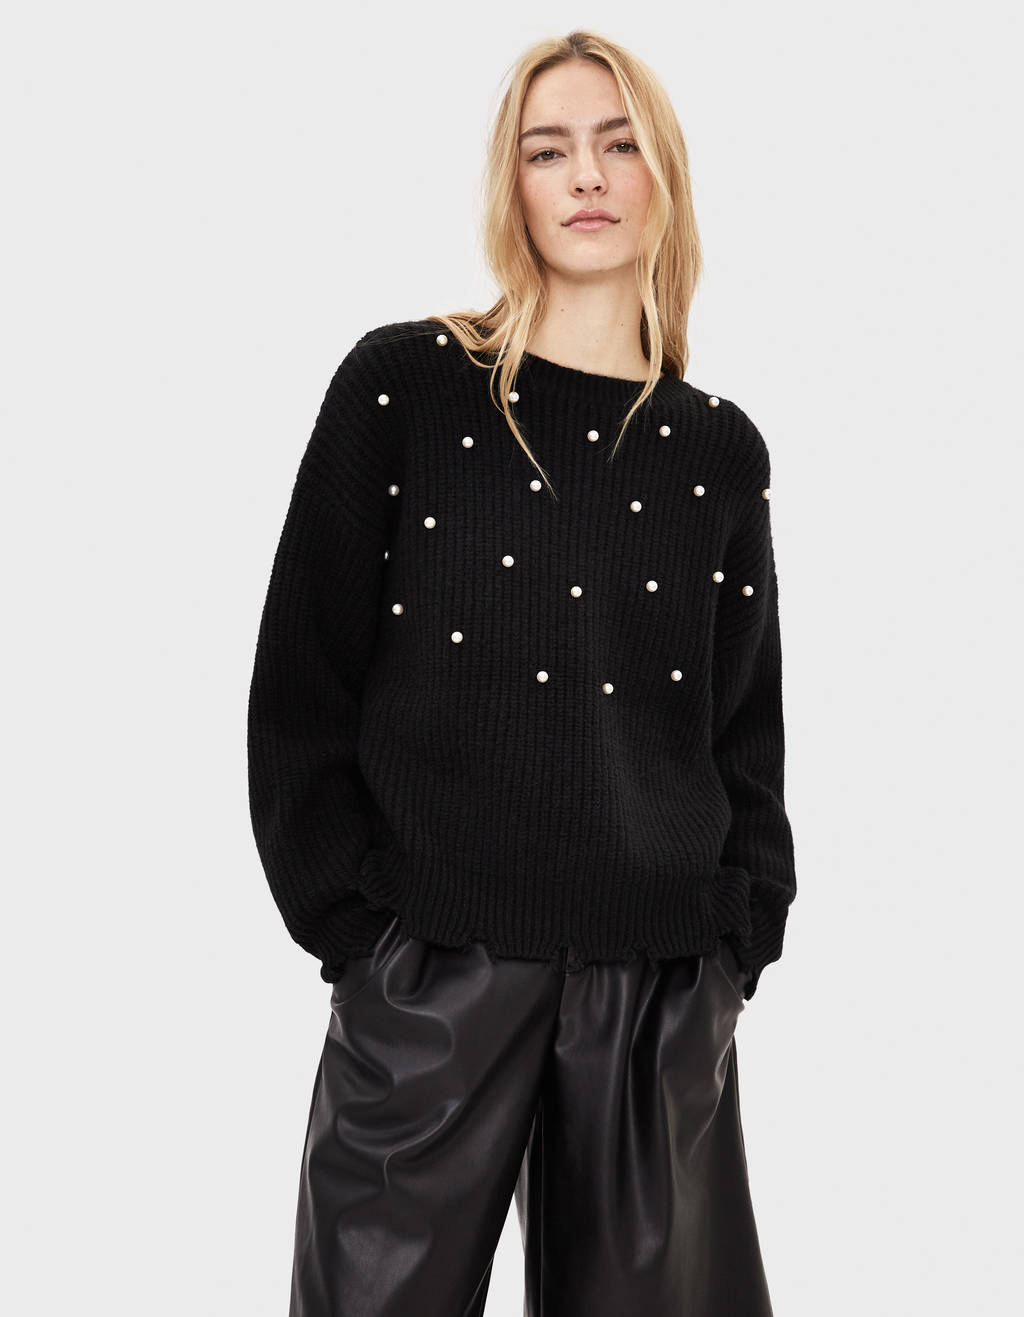 Sweater with pearl beads